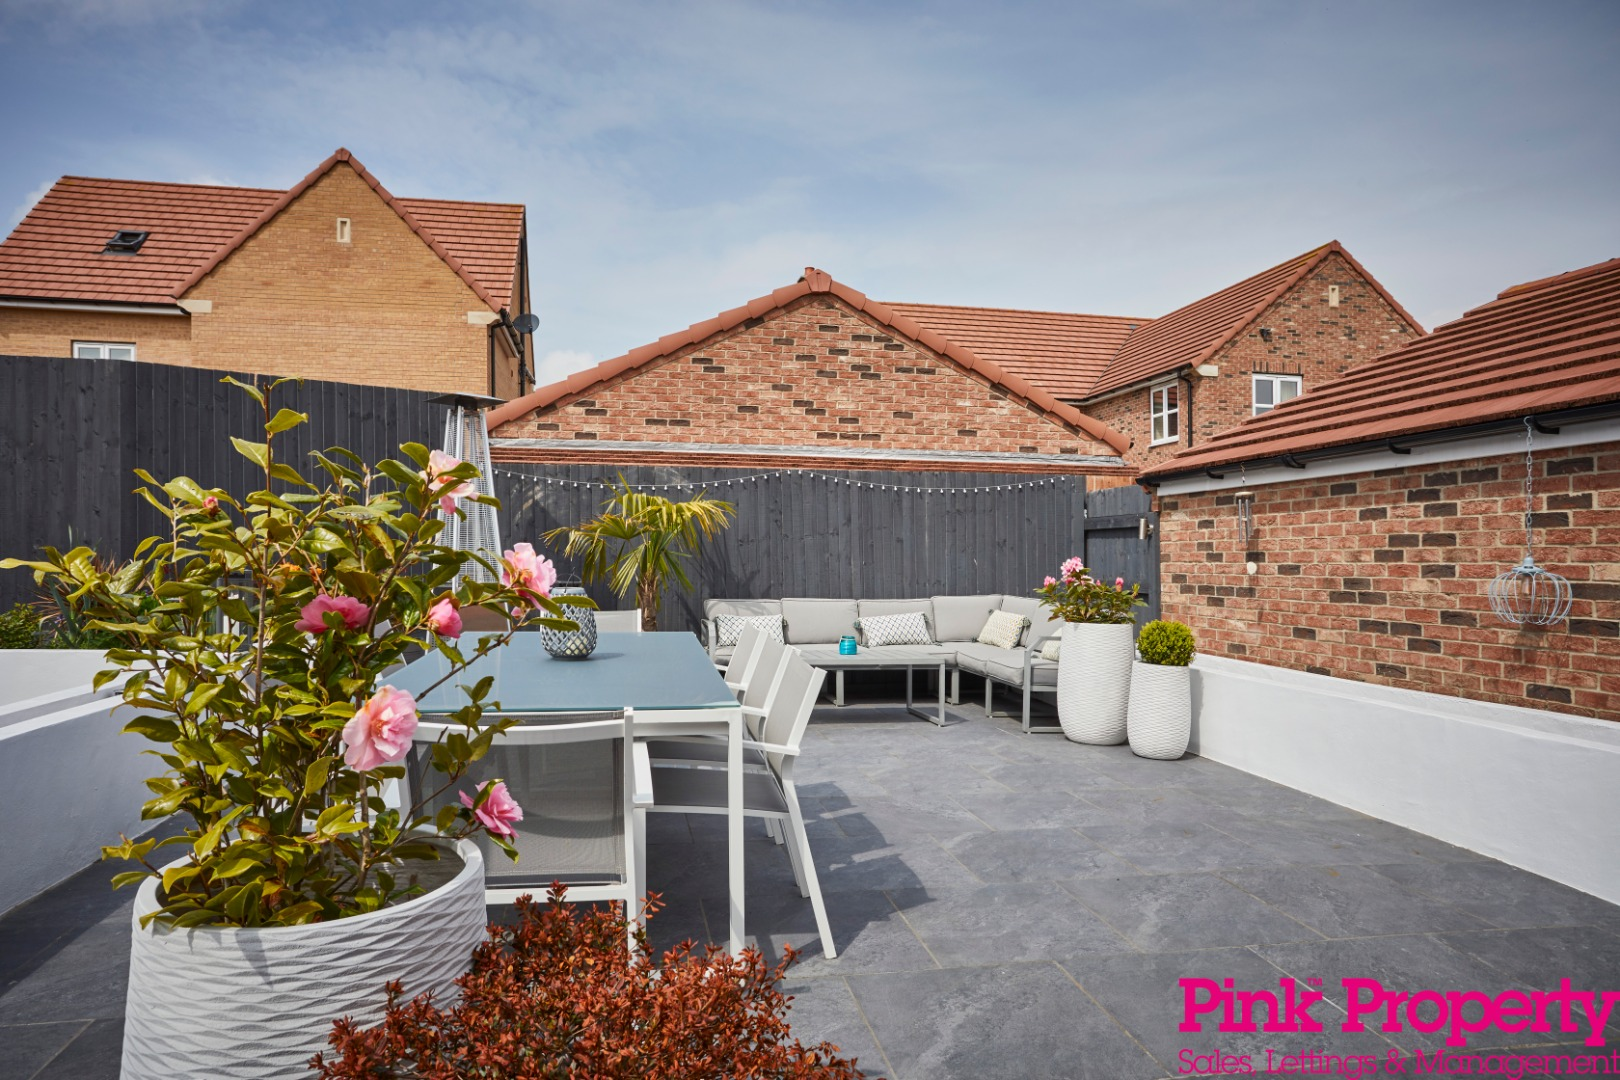 5 bed house for sale in Nursery Close, Swanland, HU14 7